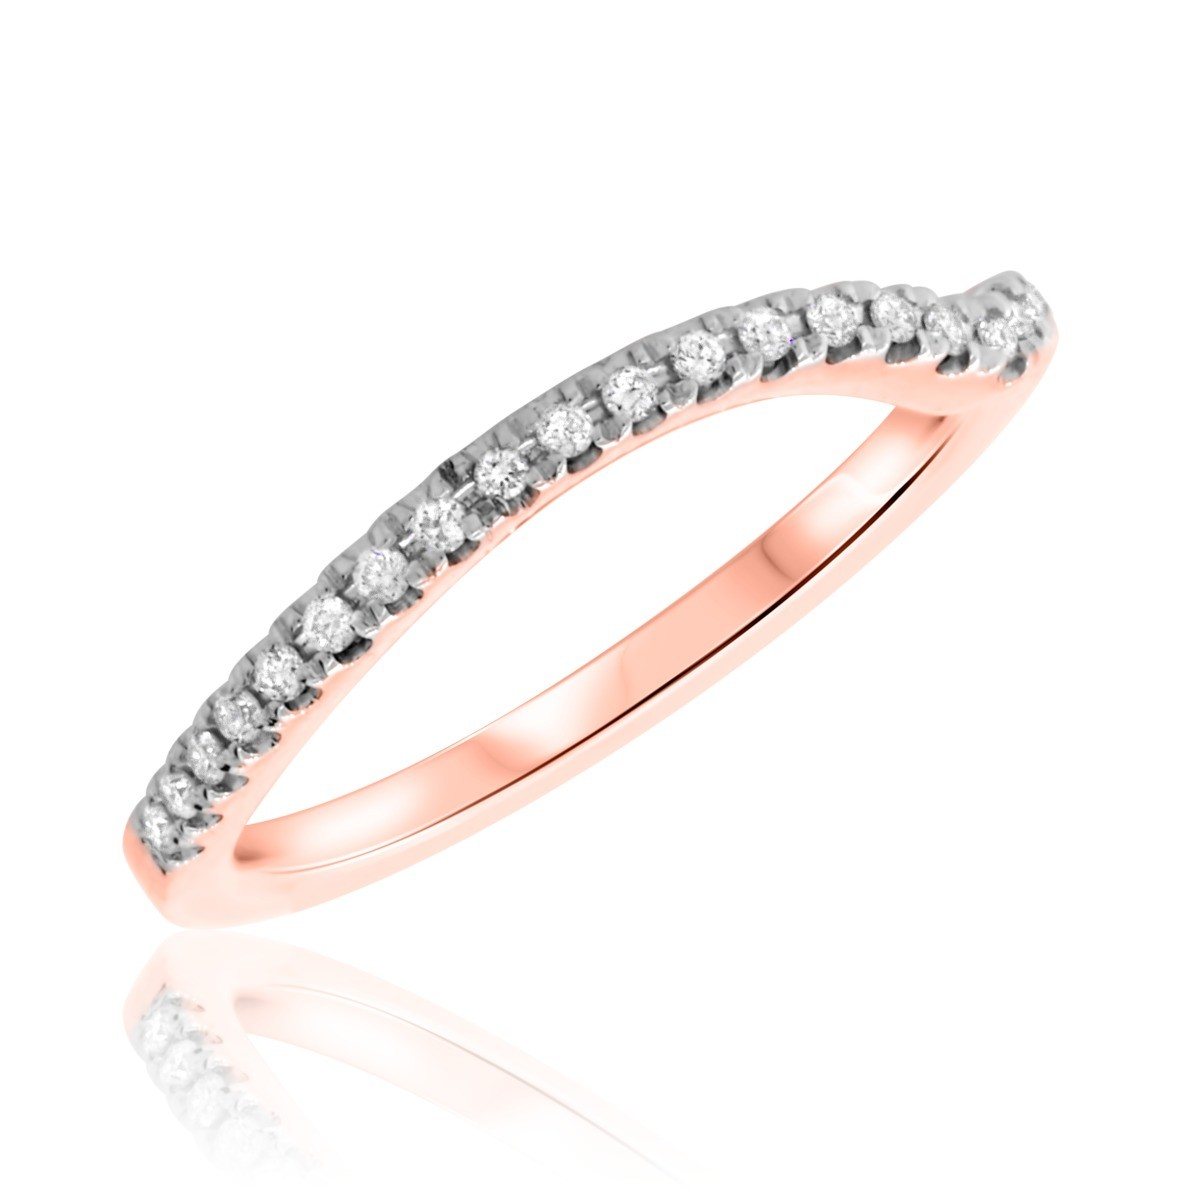 1/8 Carat T.W. Round Cut Diamond Ladies Wedding Band 10K Rose Gold